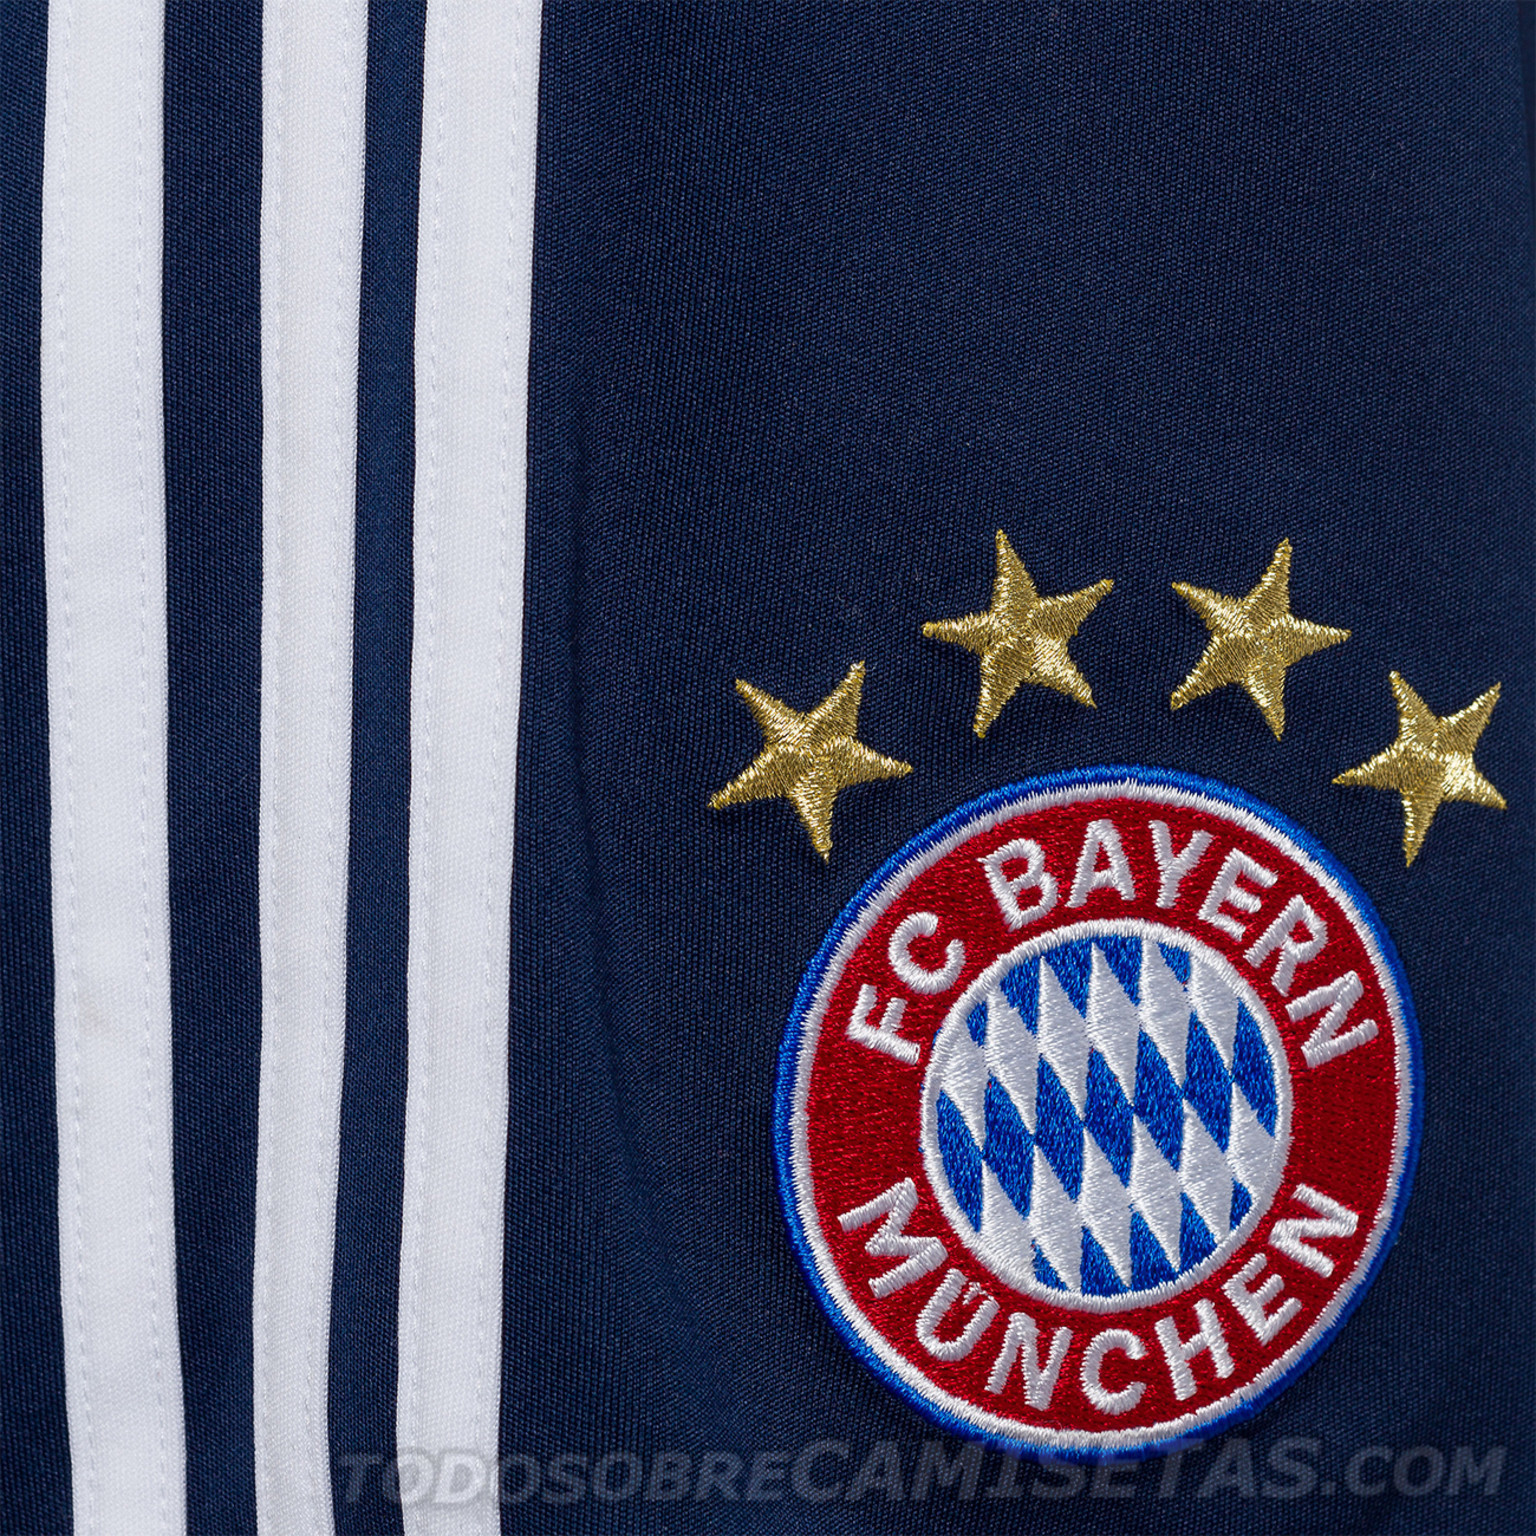 Bayern-Munich-2018-19-adidas-new-home-kit-16.jpg